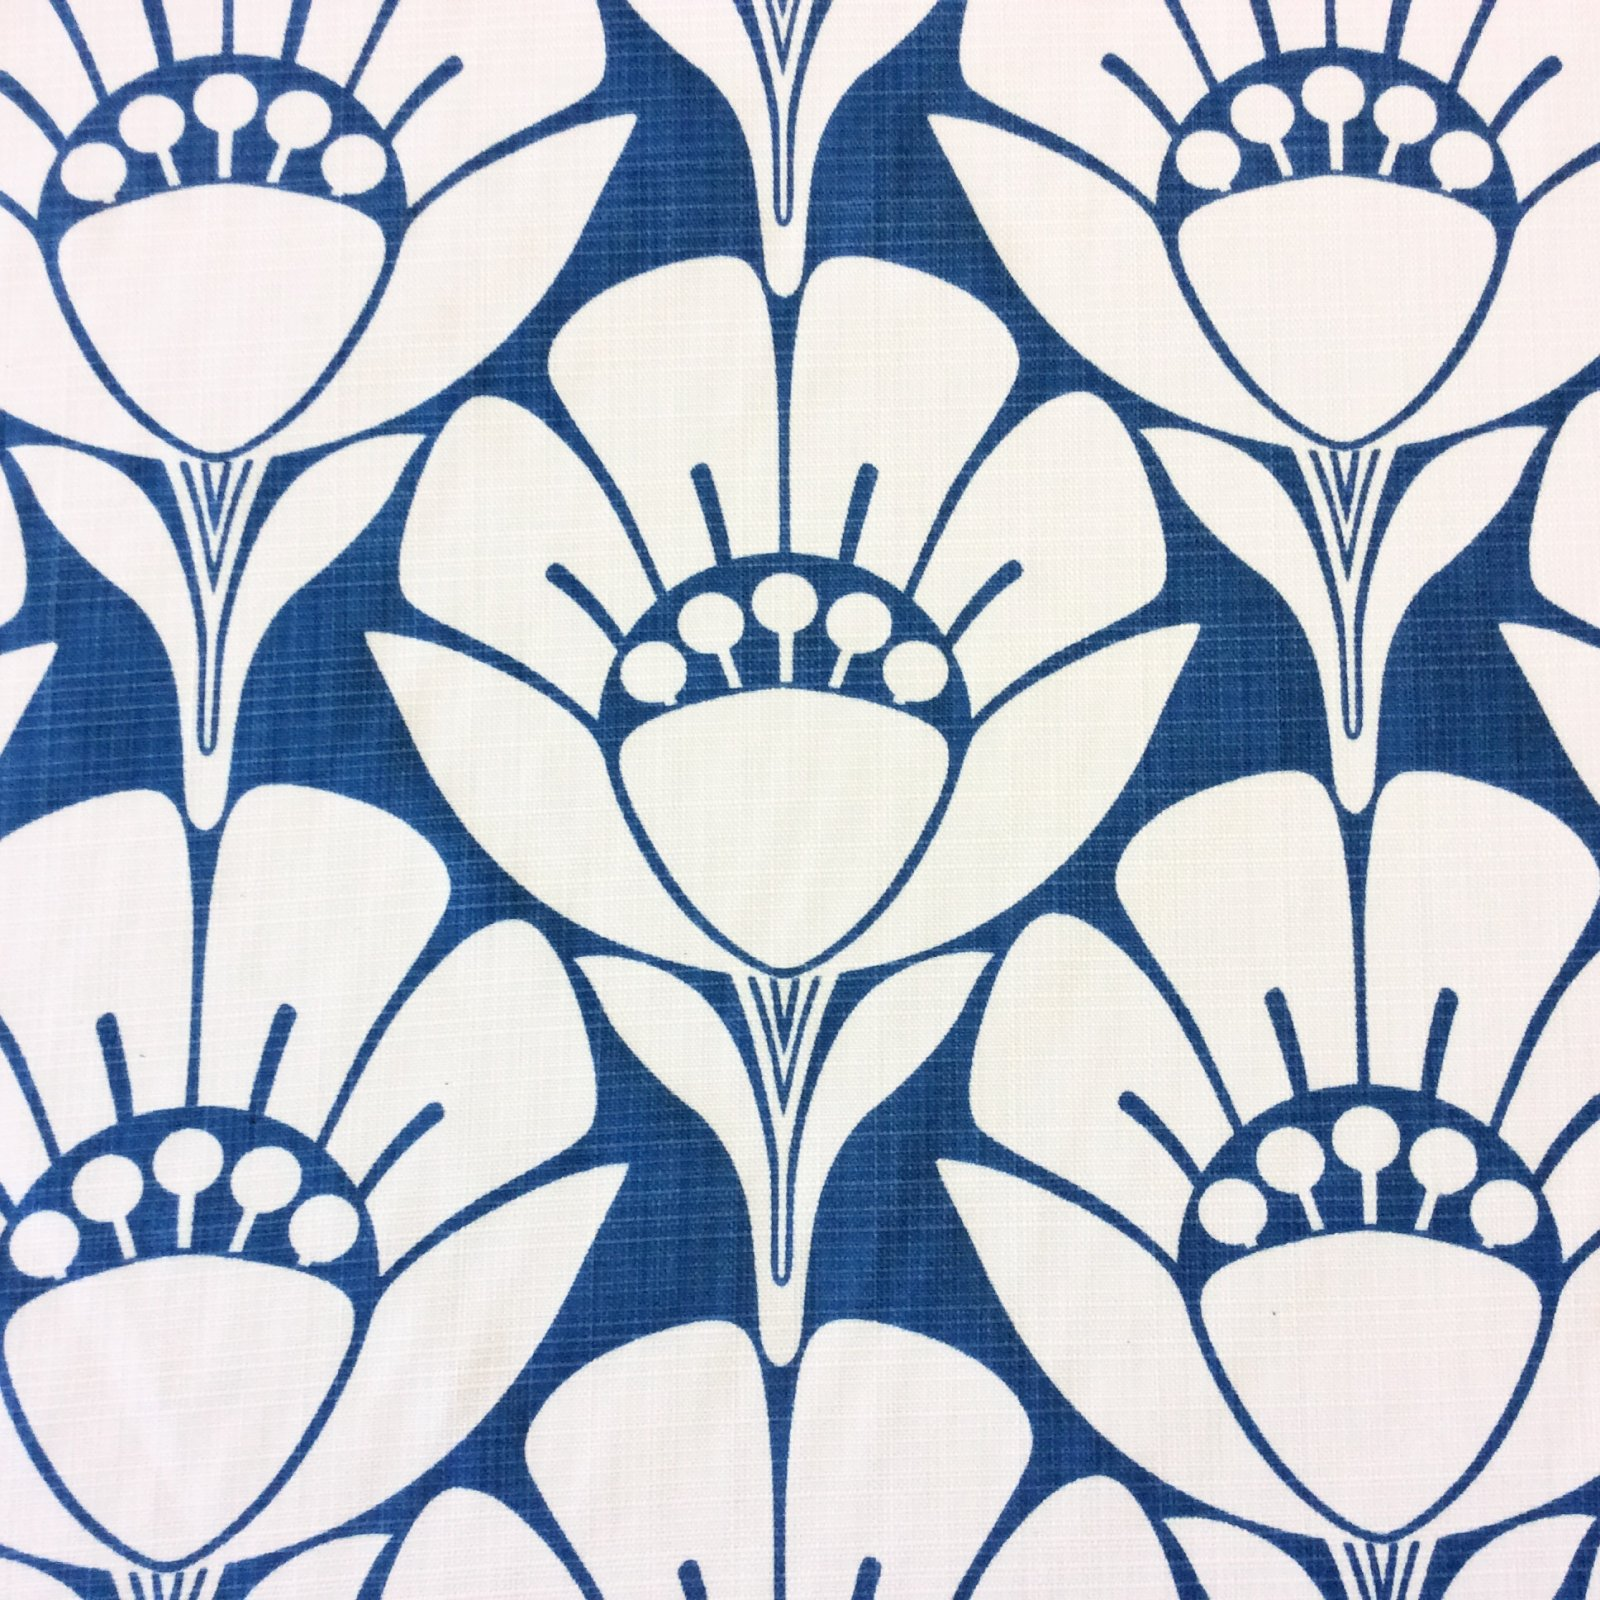 Floral Blue & White Floral Art Deco Retro Modern Spa Indoor Outdoor Fabric LHD240